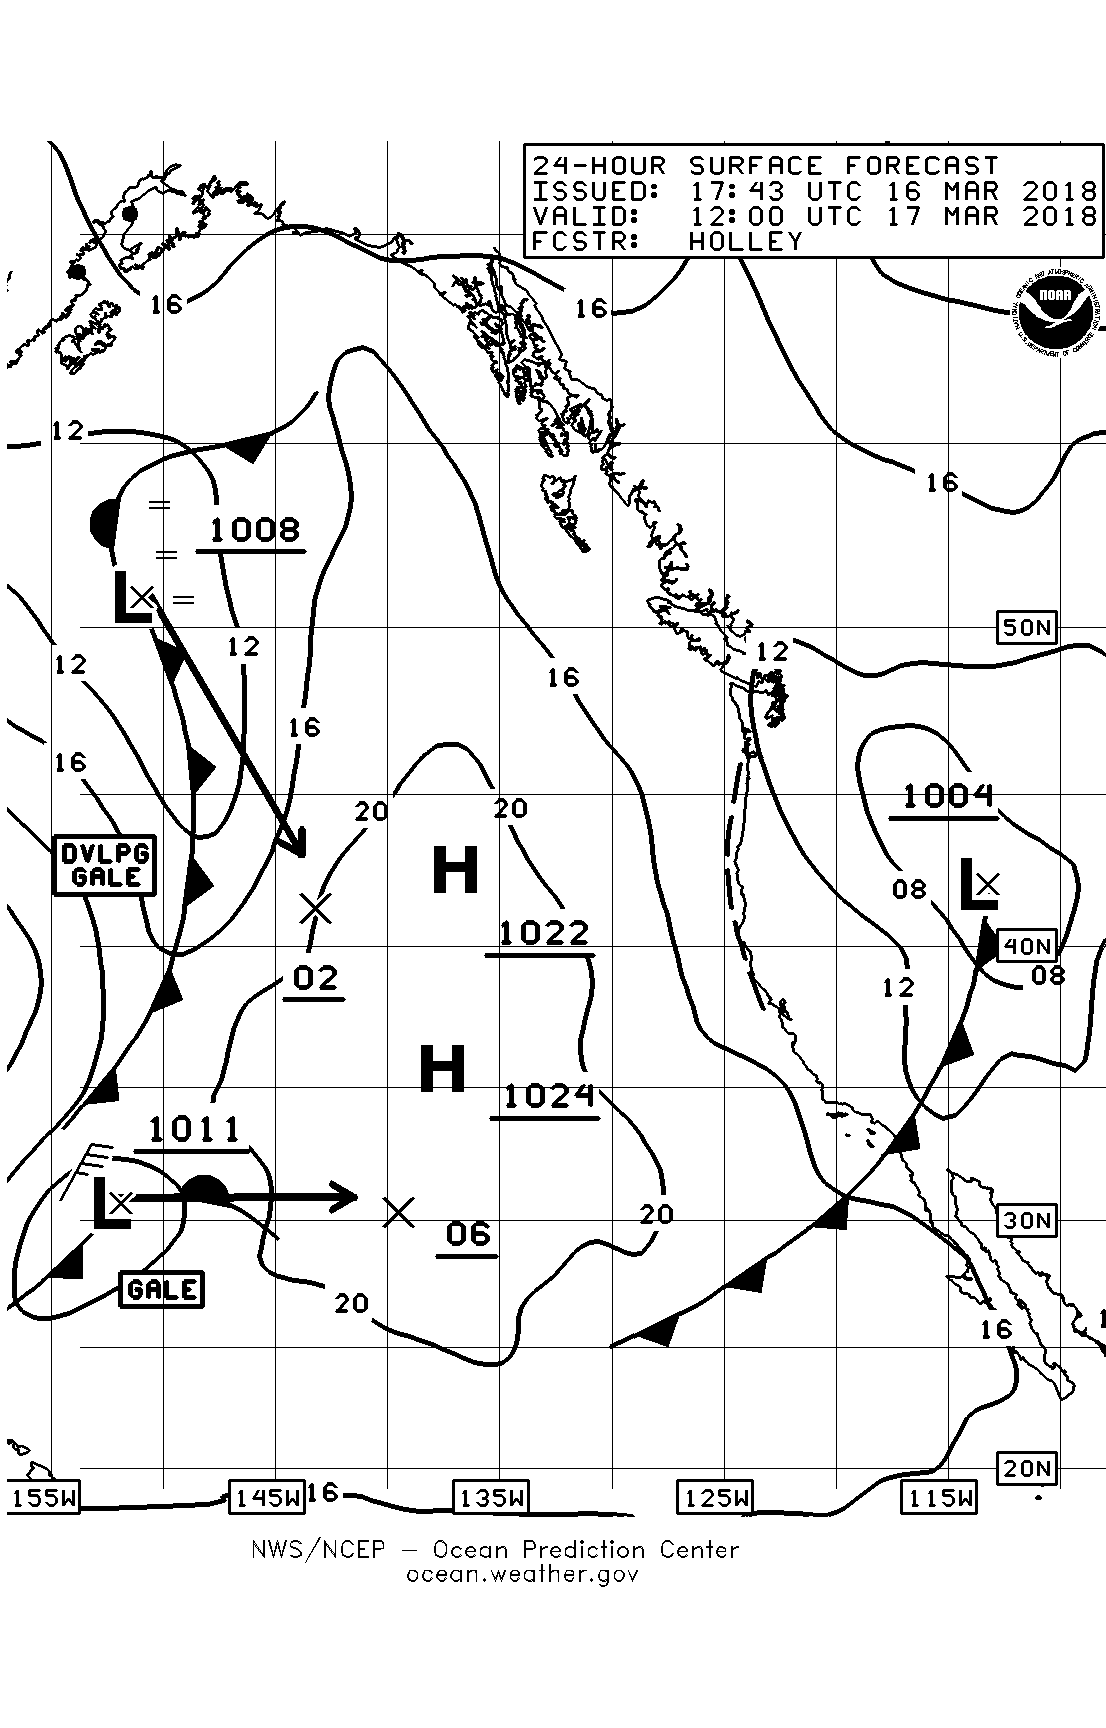 Bruces Brief March 16 18 And Gig Harbor Yc Islands Race Sailish